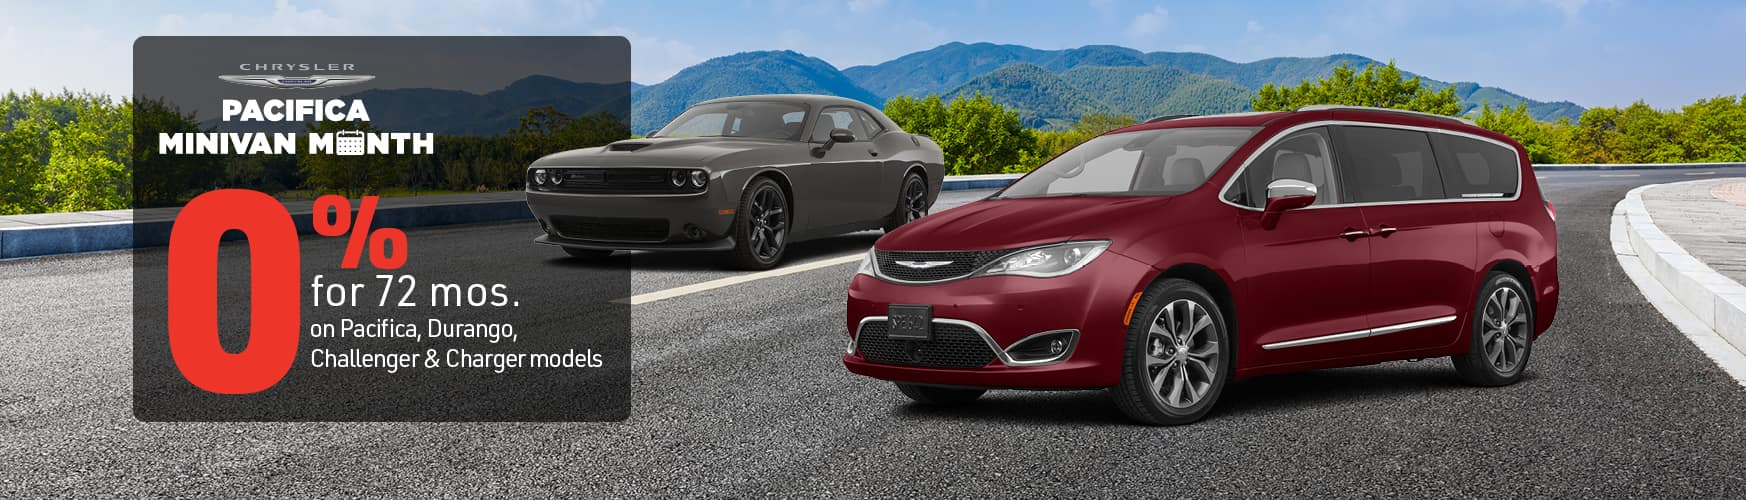 0% for 72 months for Pacifica, Durango, Challenger & Charger models